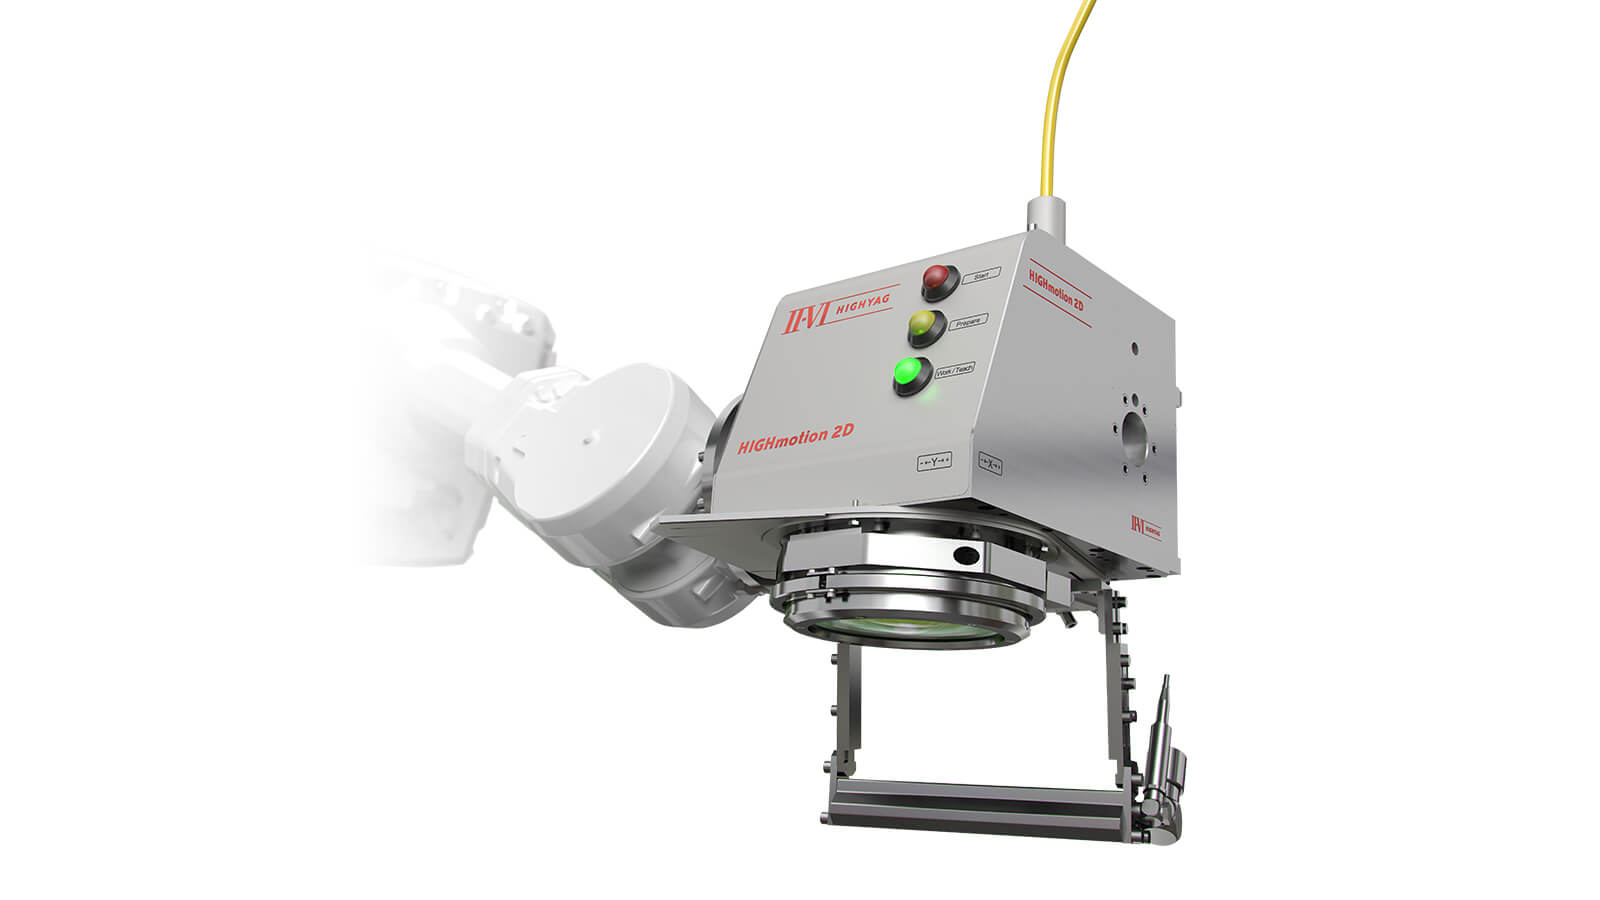 Laser Processing Head HIGHmotion 2D Image